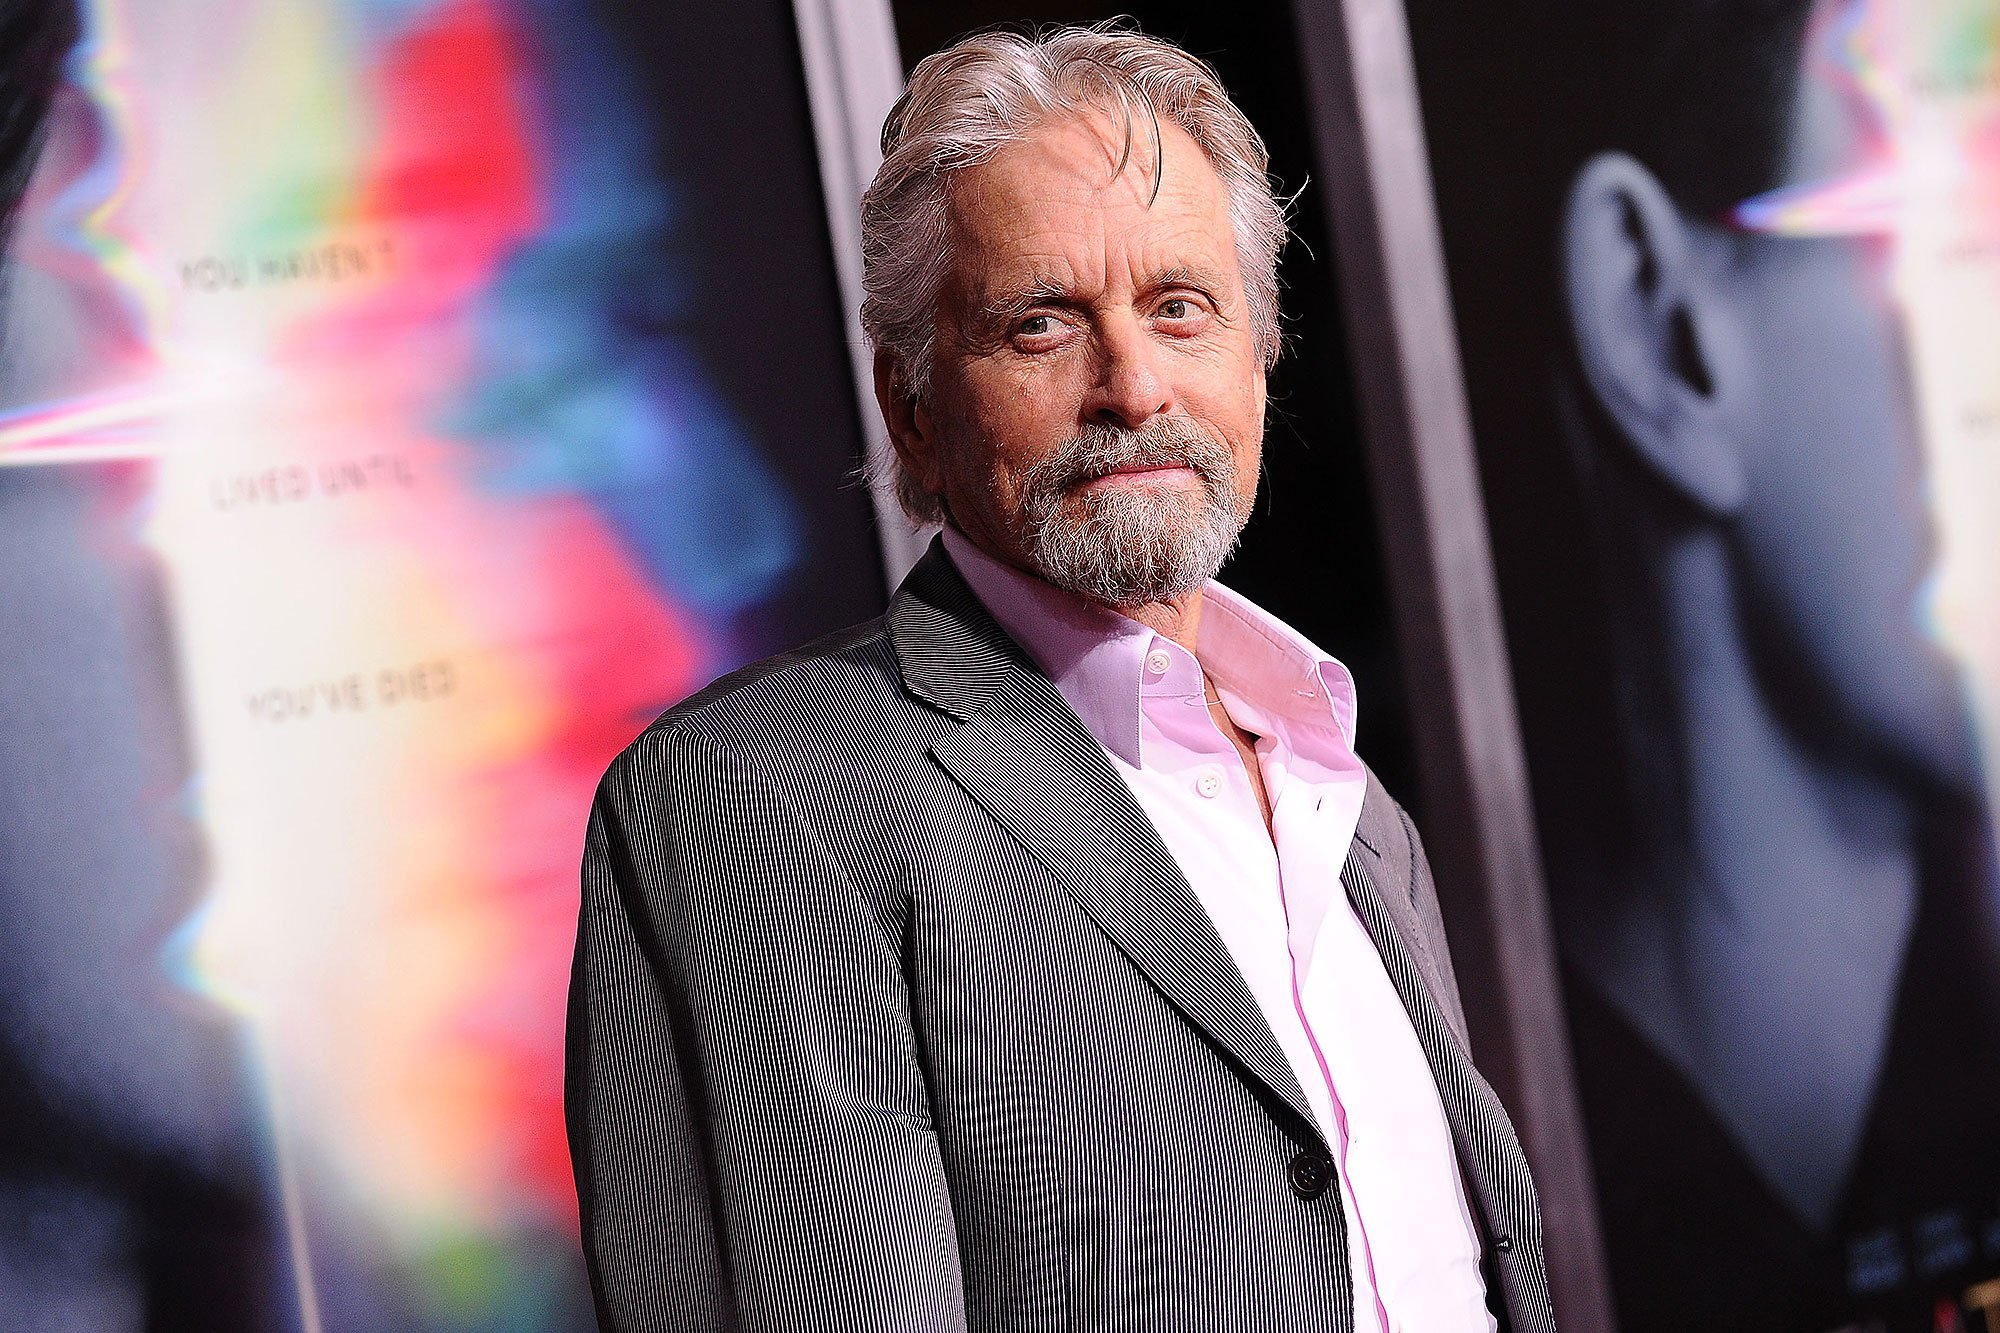 Michael Douglas preemptively denies sexual harassment allegation before it goes public